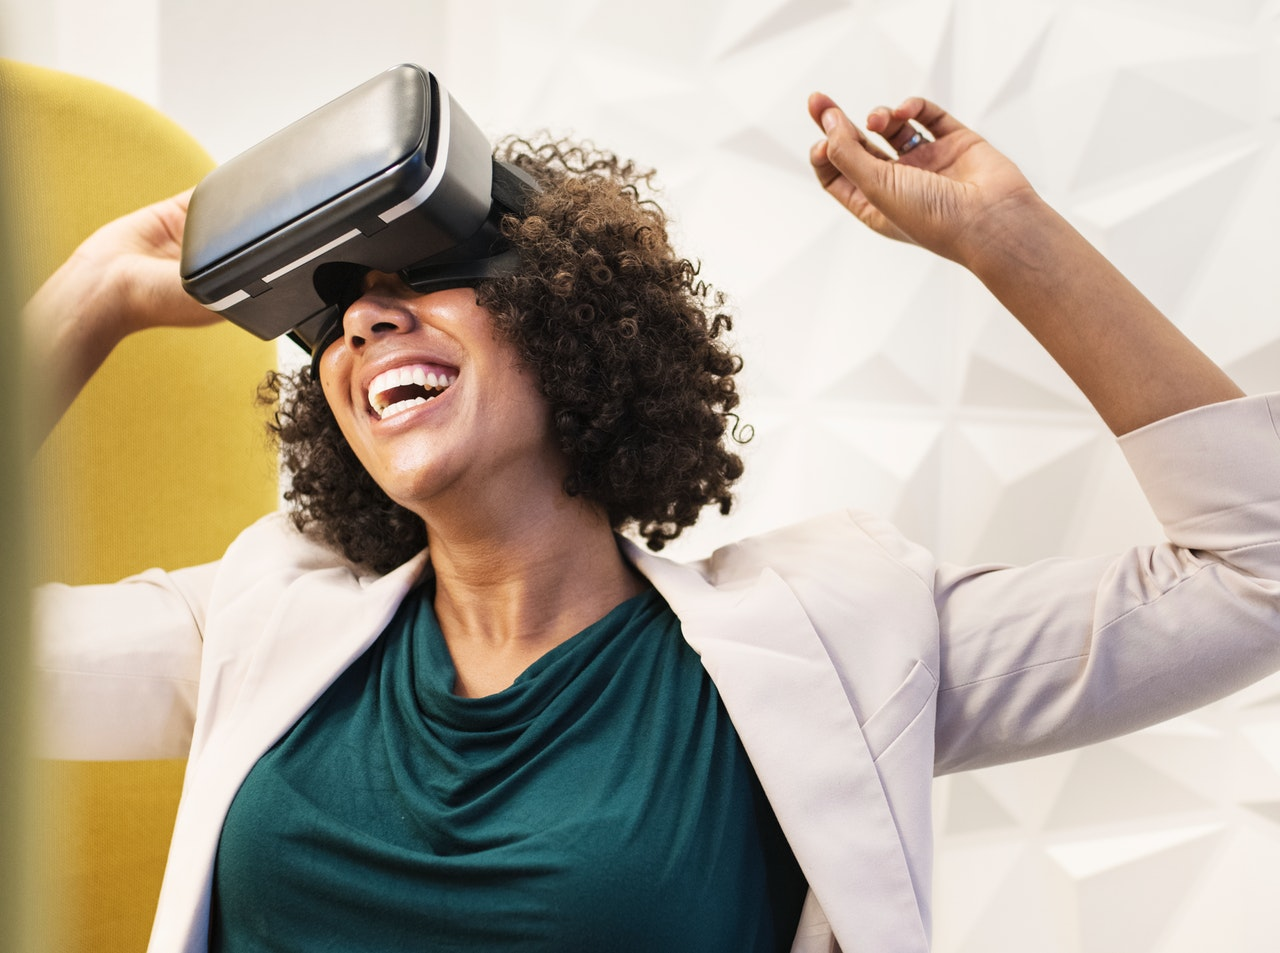 Should your business consider Virtual Reality? VR Benefits and ROI